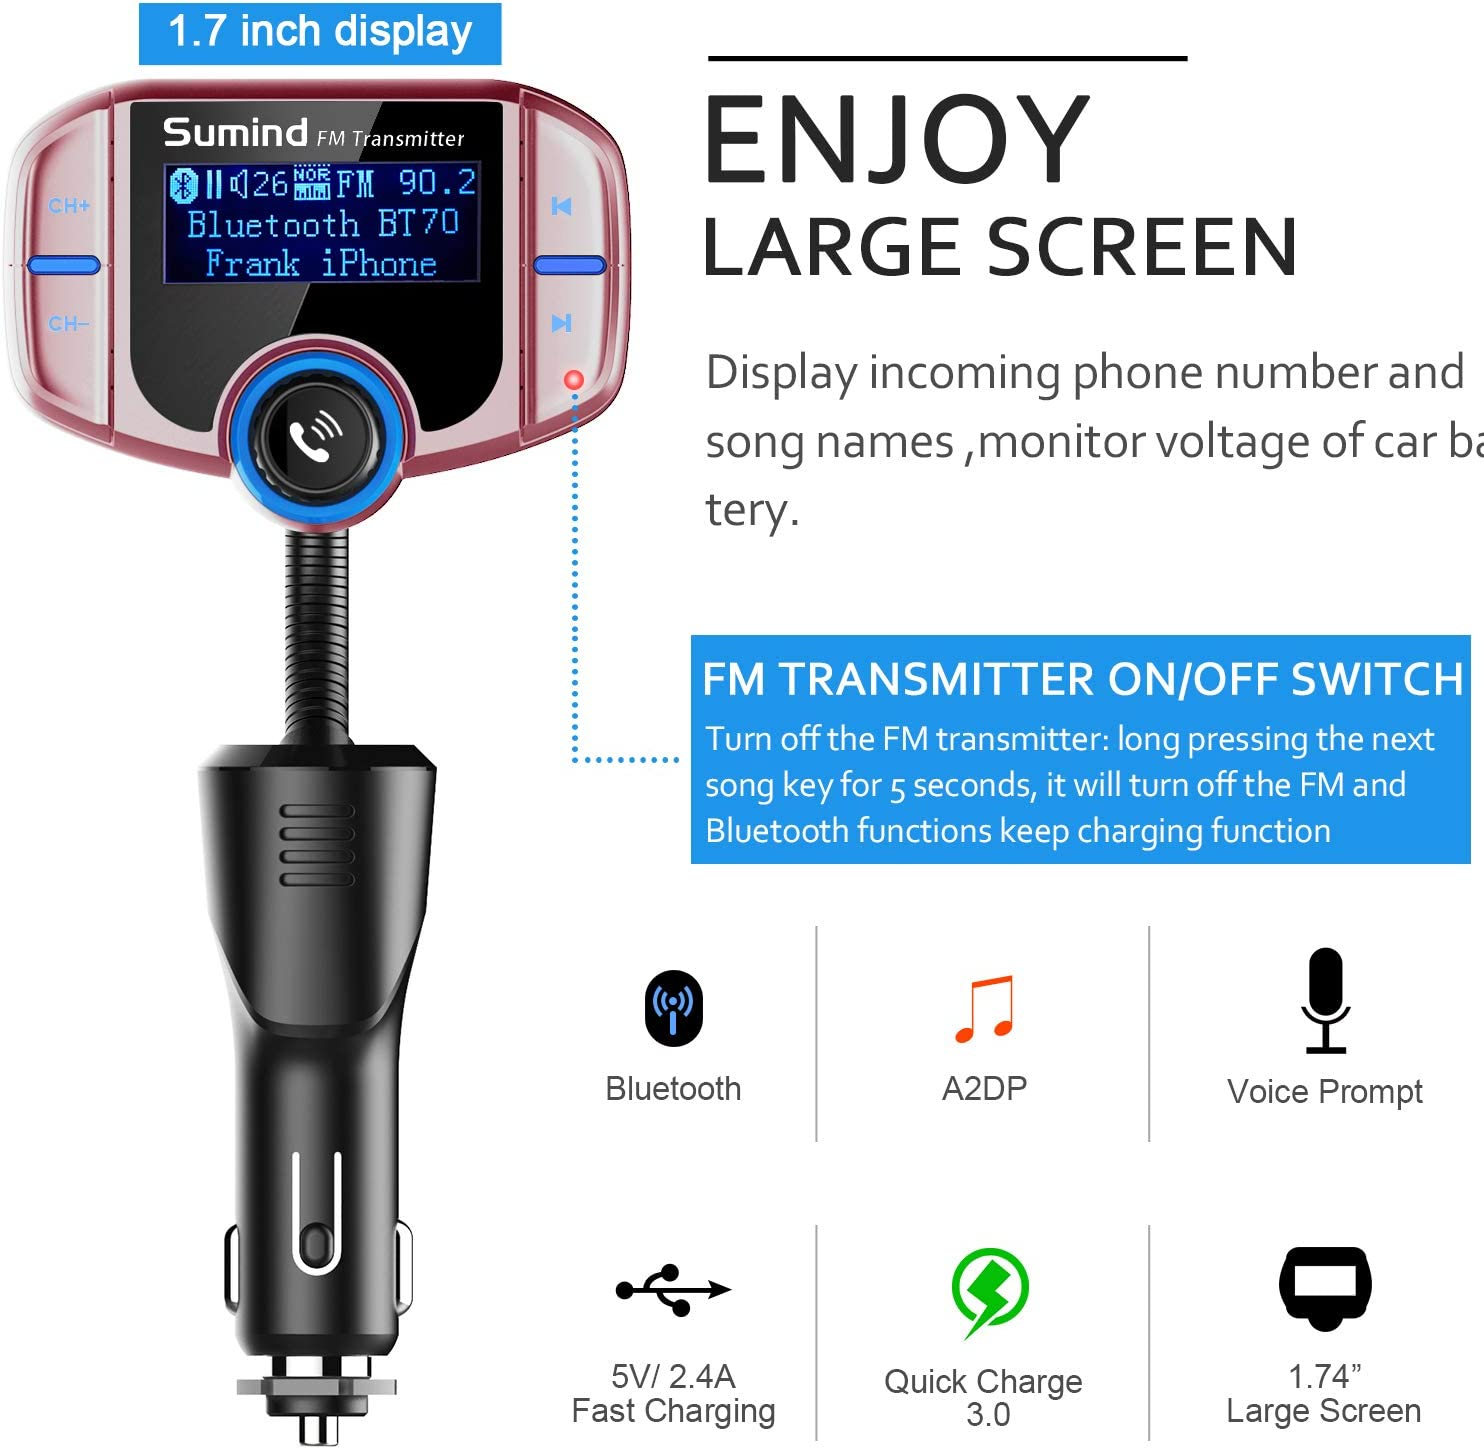 Wireless Radio Adapter Hands-Free Kit with 1.7 Inch Display Golden Upgraded Version TF Card Mp3 Player Sumind Car Bluetooth FM Transmitter QC3.0 and Smart 2.4A USB Ports AUX Output